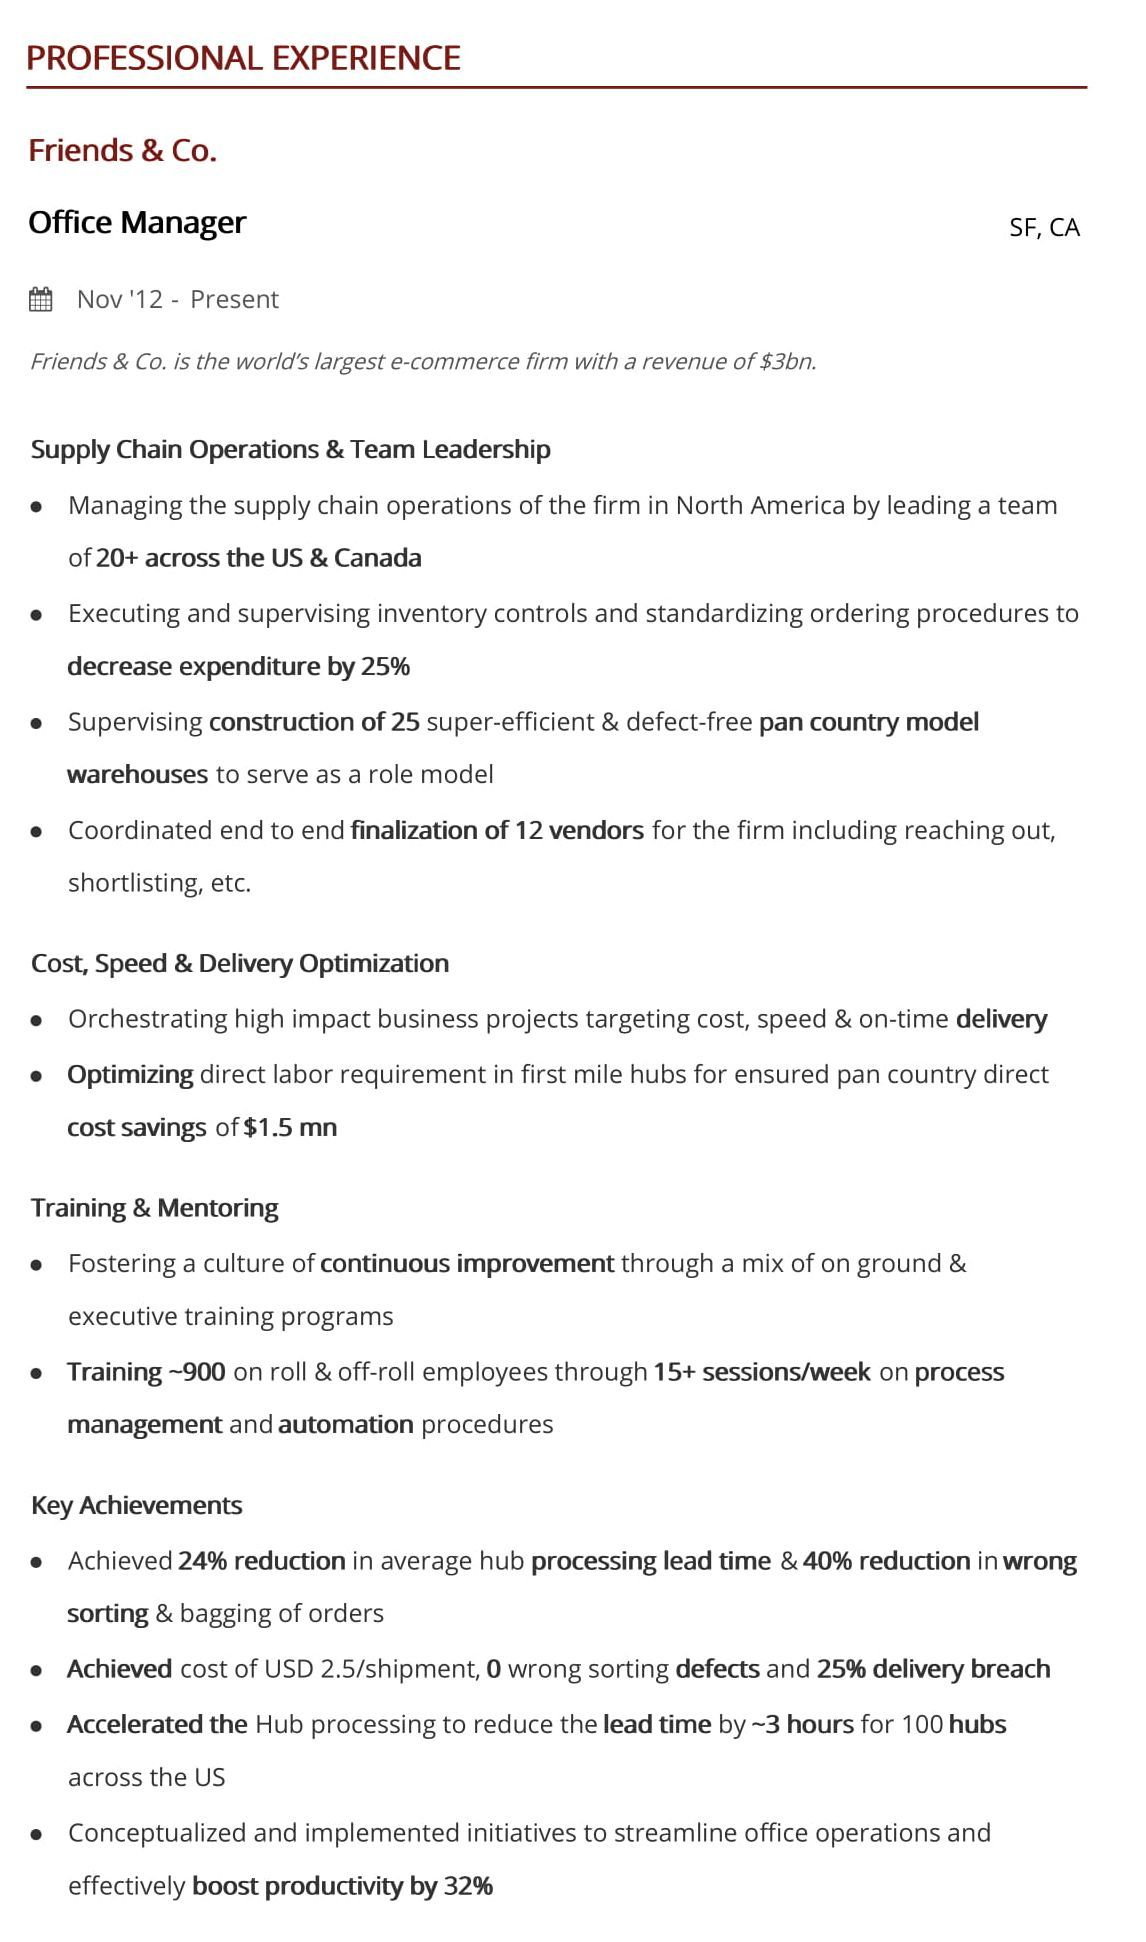 Office Manager Resume A 10 Step 2019 Guide With Samples Examples